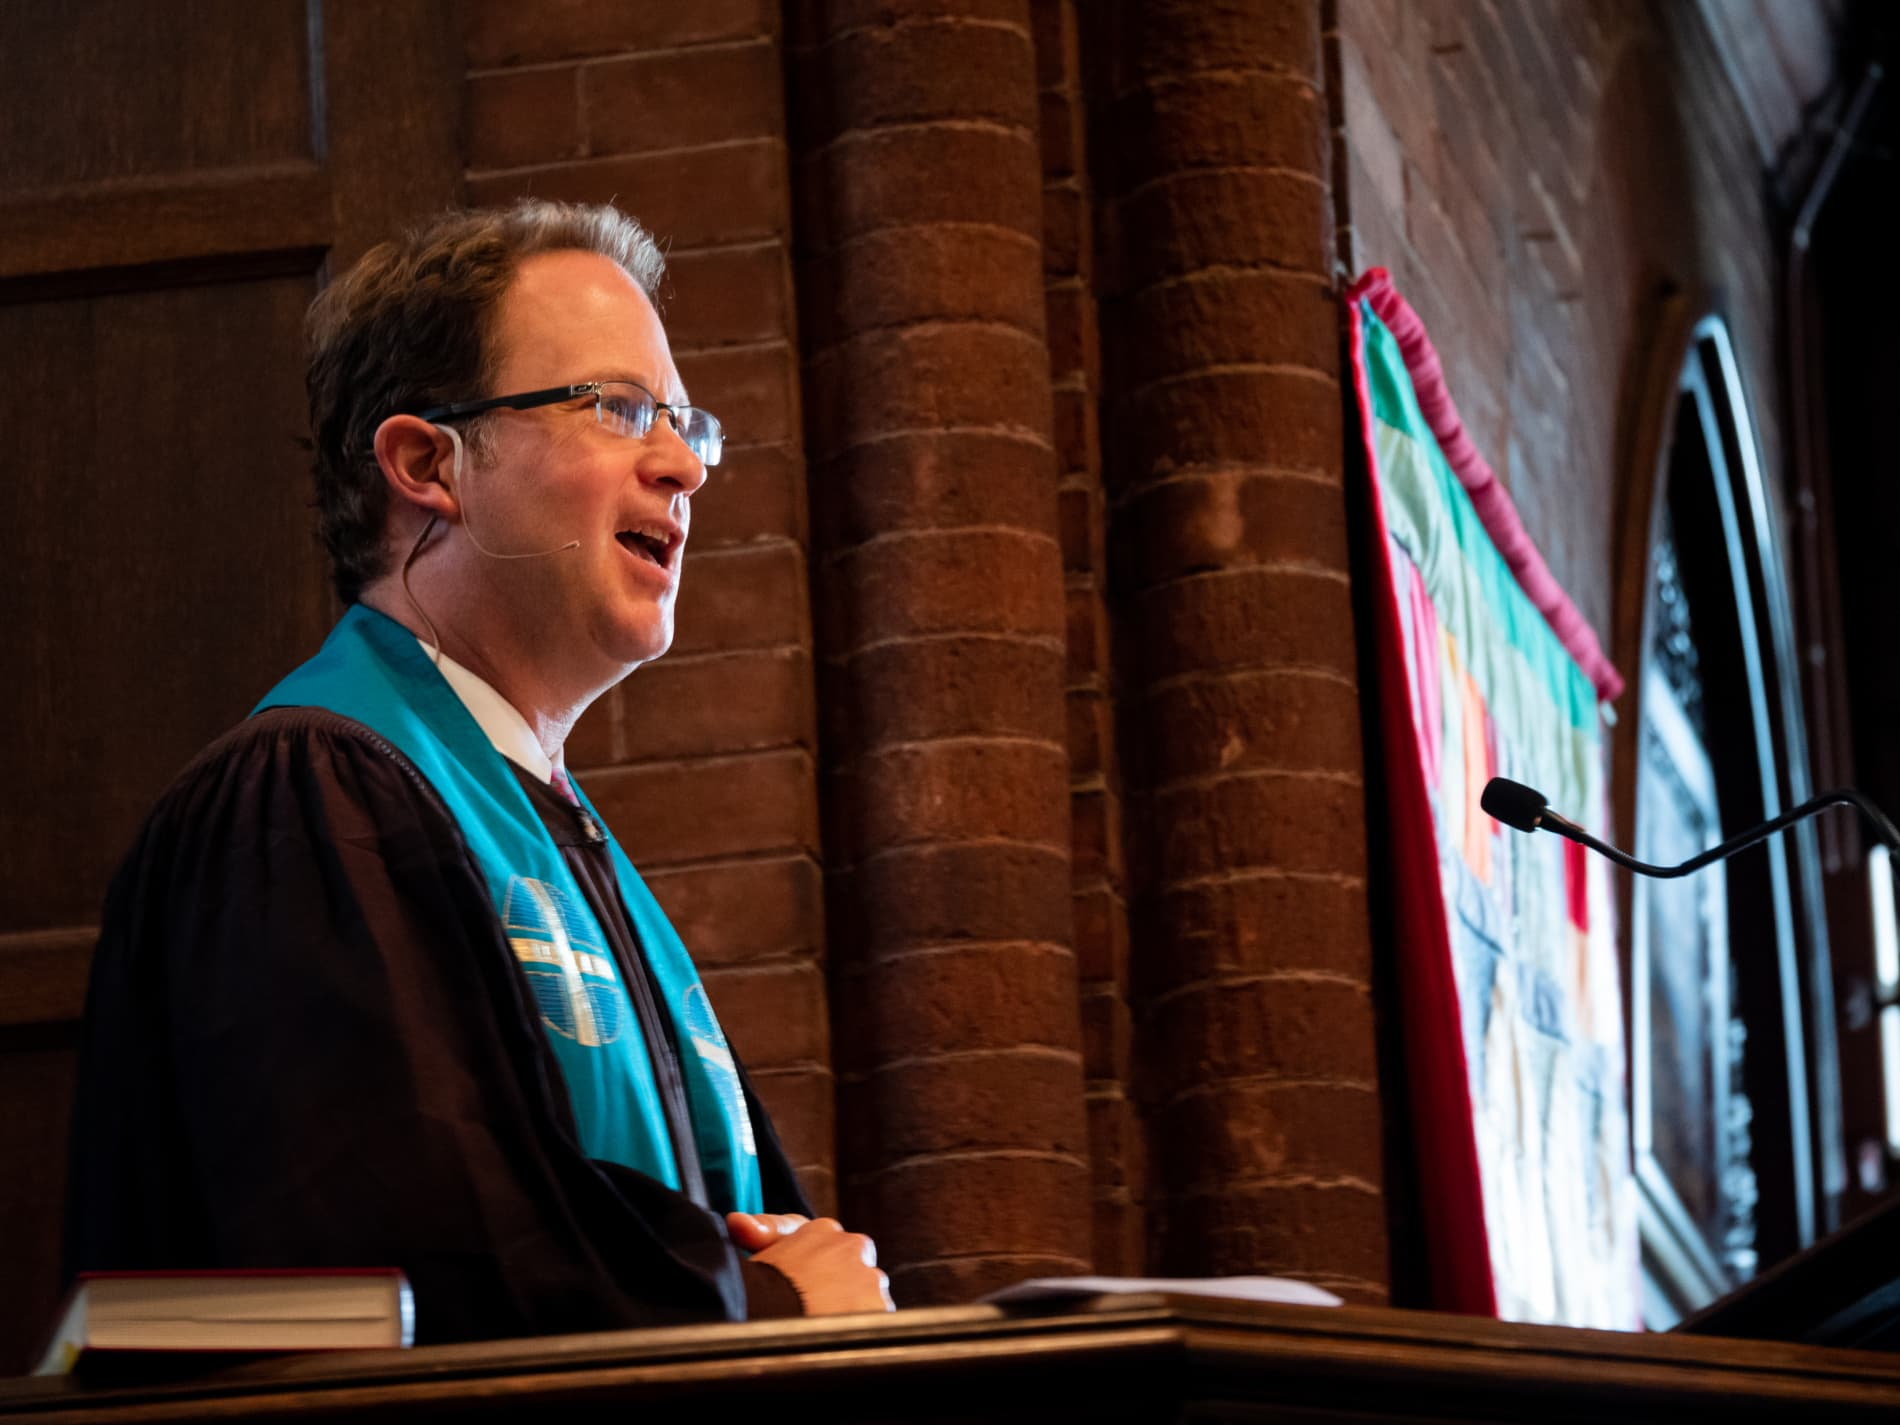 Rev. Jeff Barz-Snell preaches from the pulpit